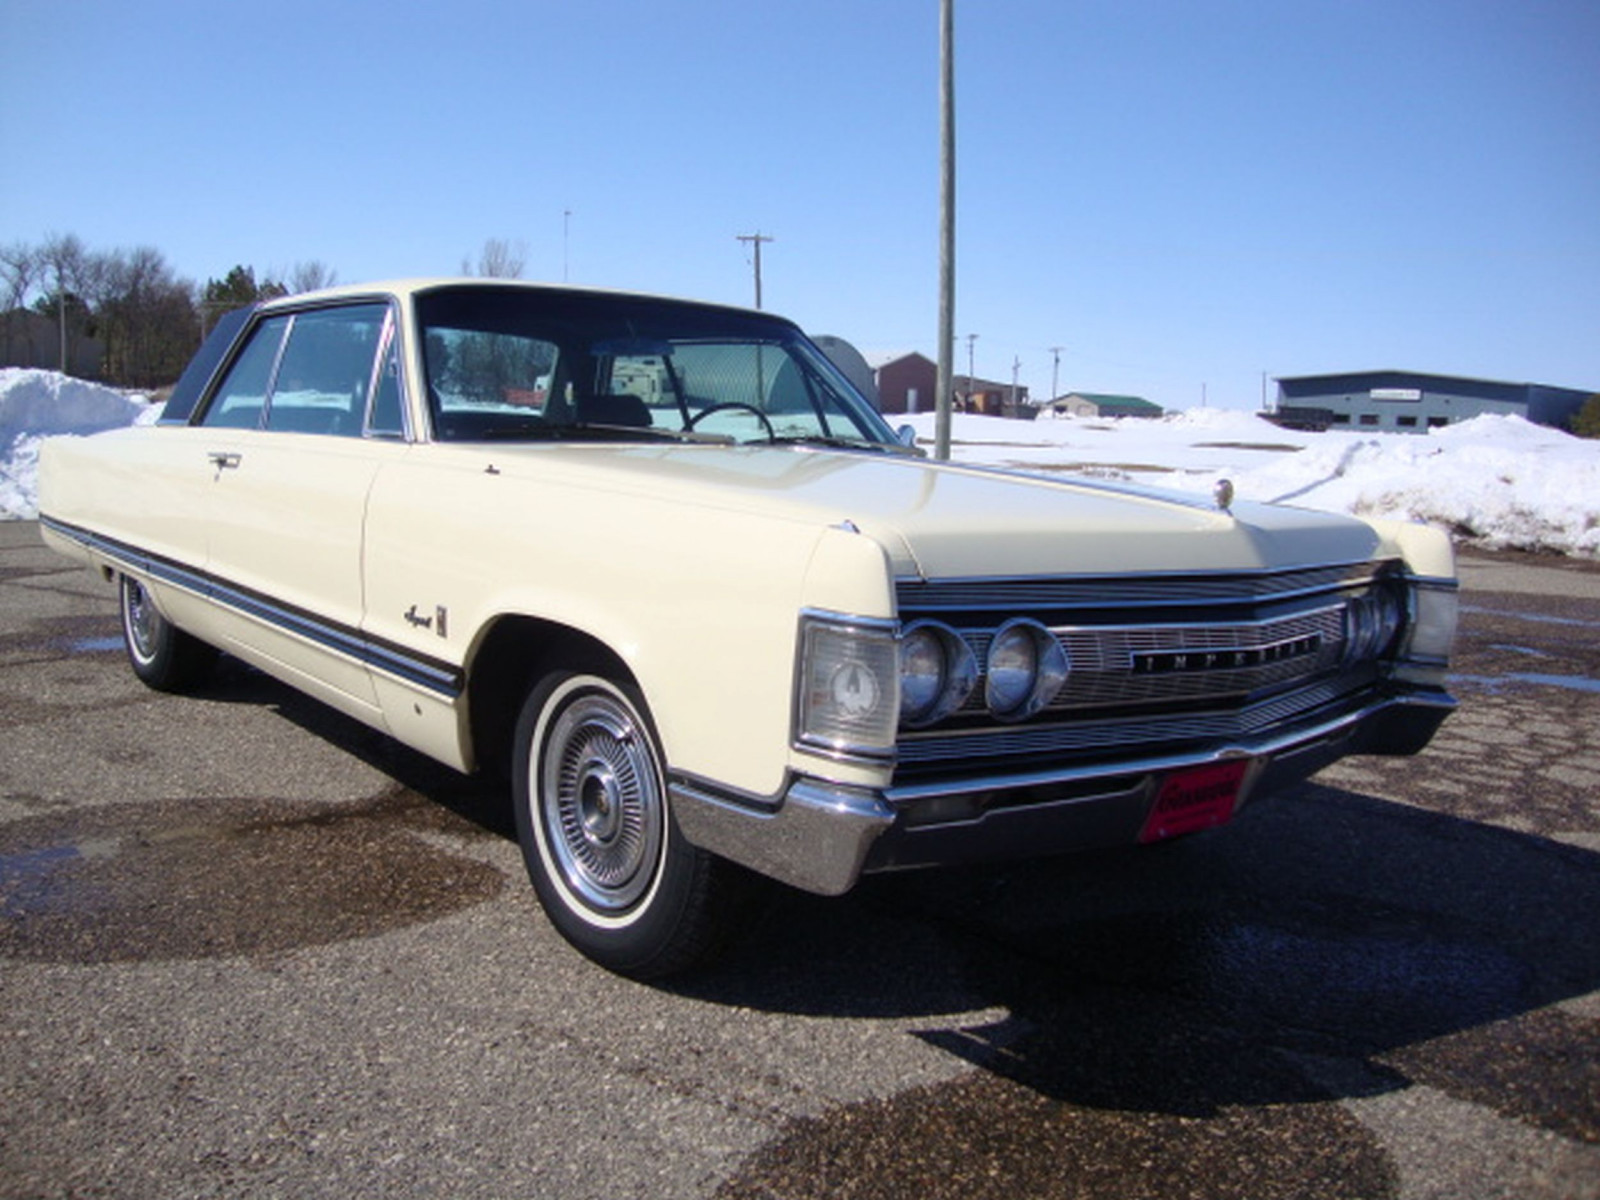 1967 Chrysler Imperial Crown Coupe - Image 7